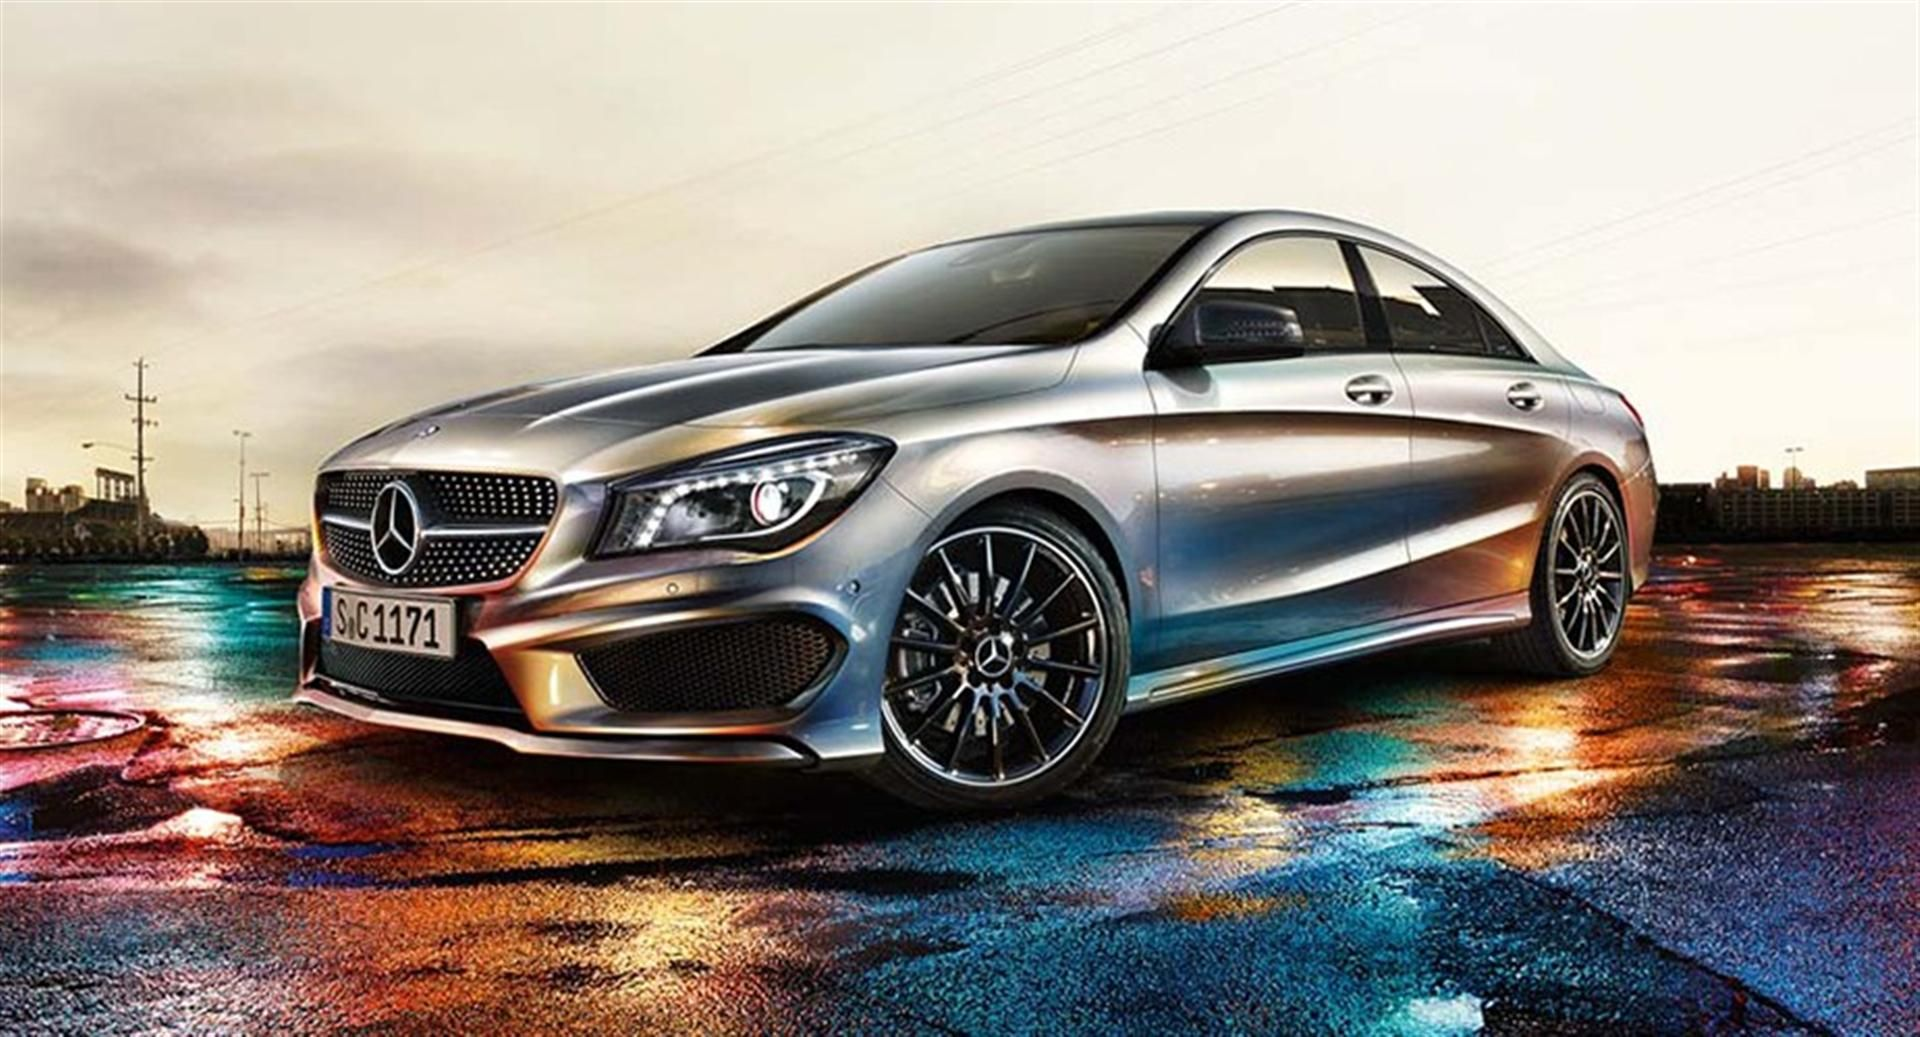 Pin by Evan Reilly on Gasoline and Sparks Cla 45 amg Mercedes 1920x1037